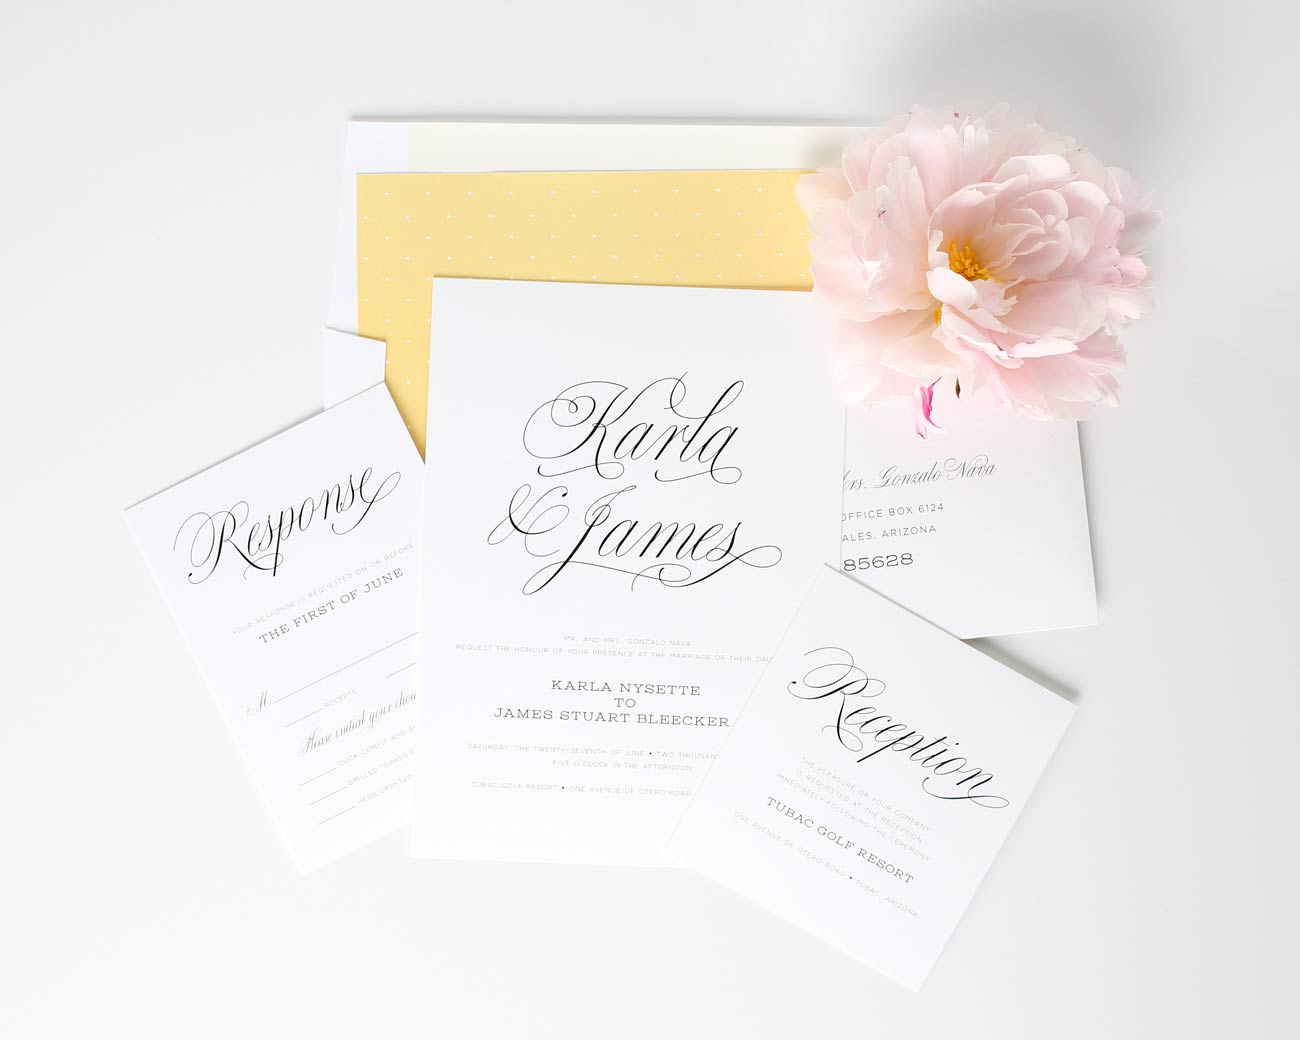 Garden wedding invitations in yellow with polka dots